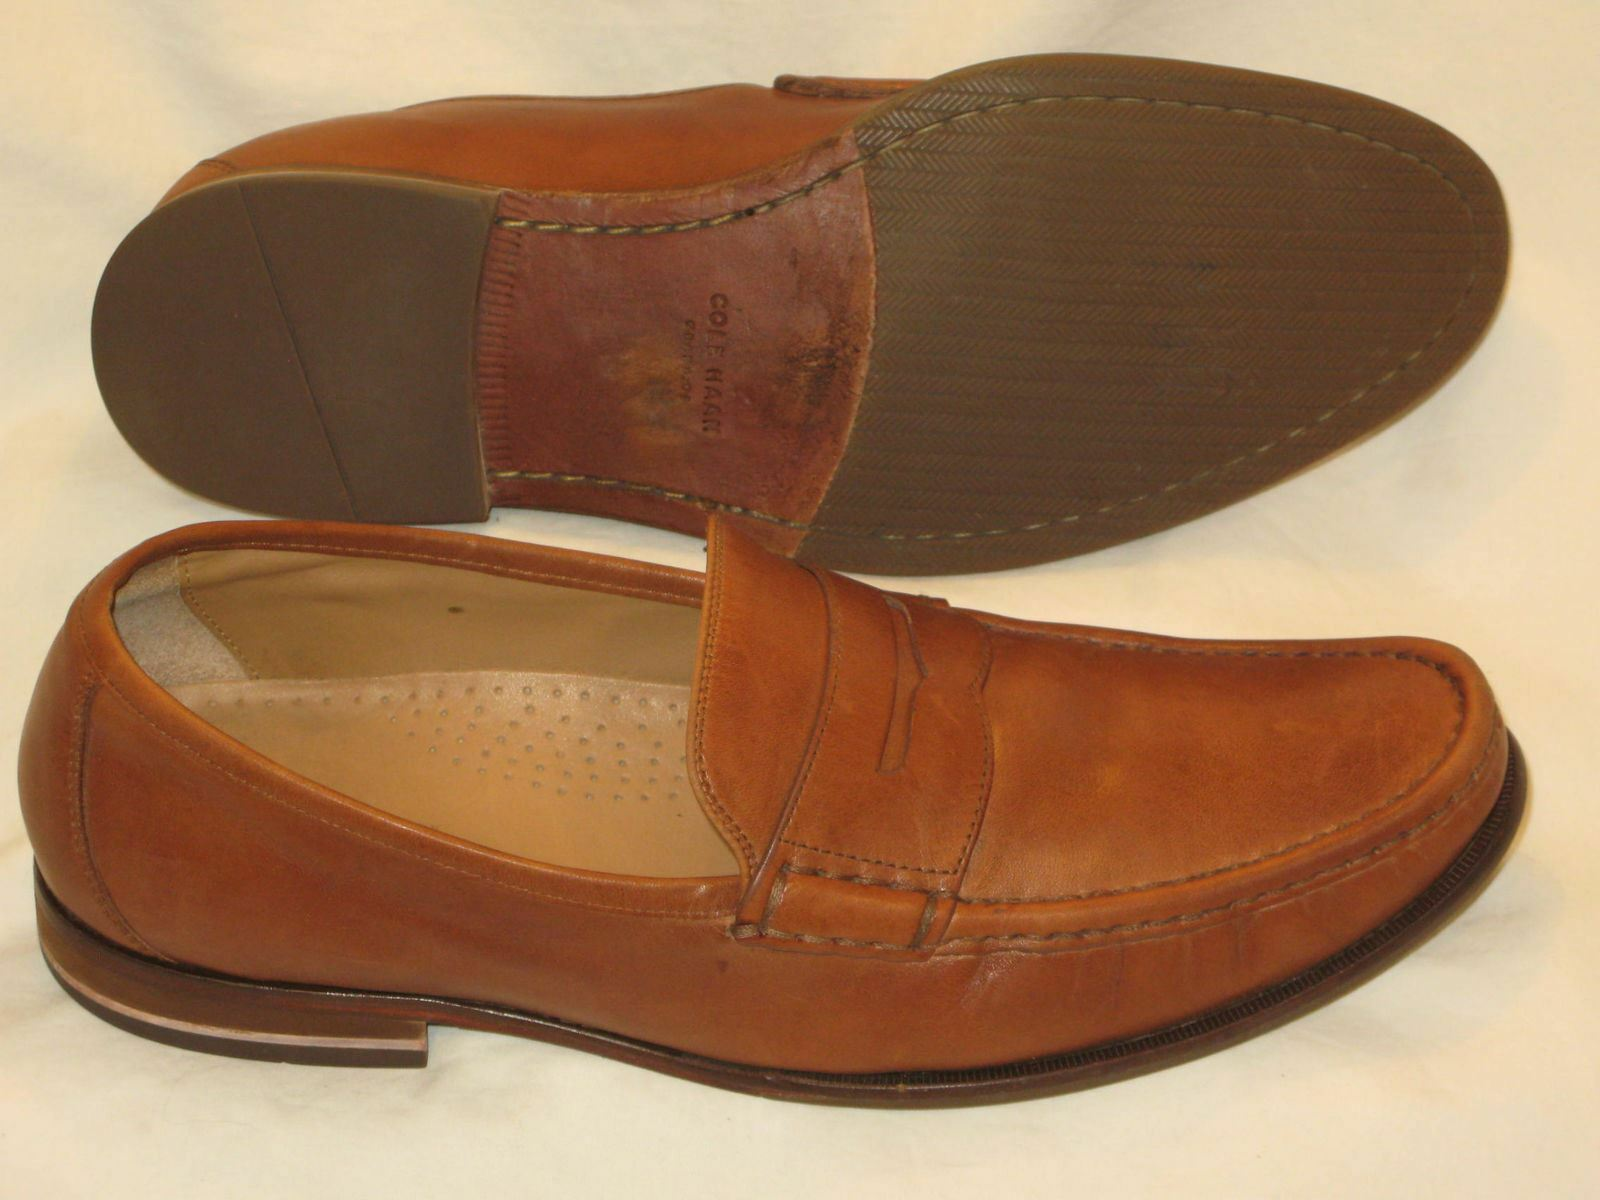 b6e4a27094a Cole Haan Aidan Grand II Penny Loafer Mens Sz 11.5 M Casual Dress shoes  Brown